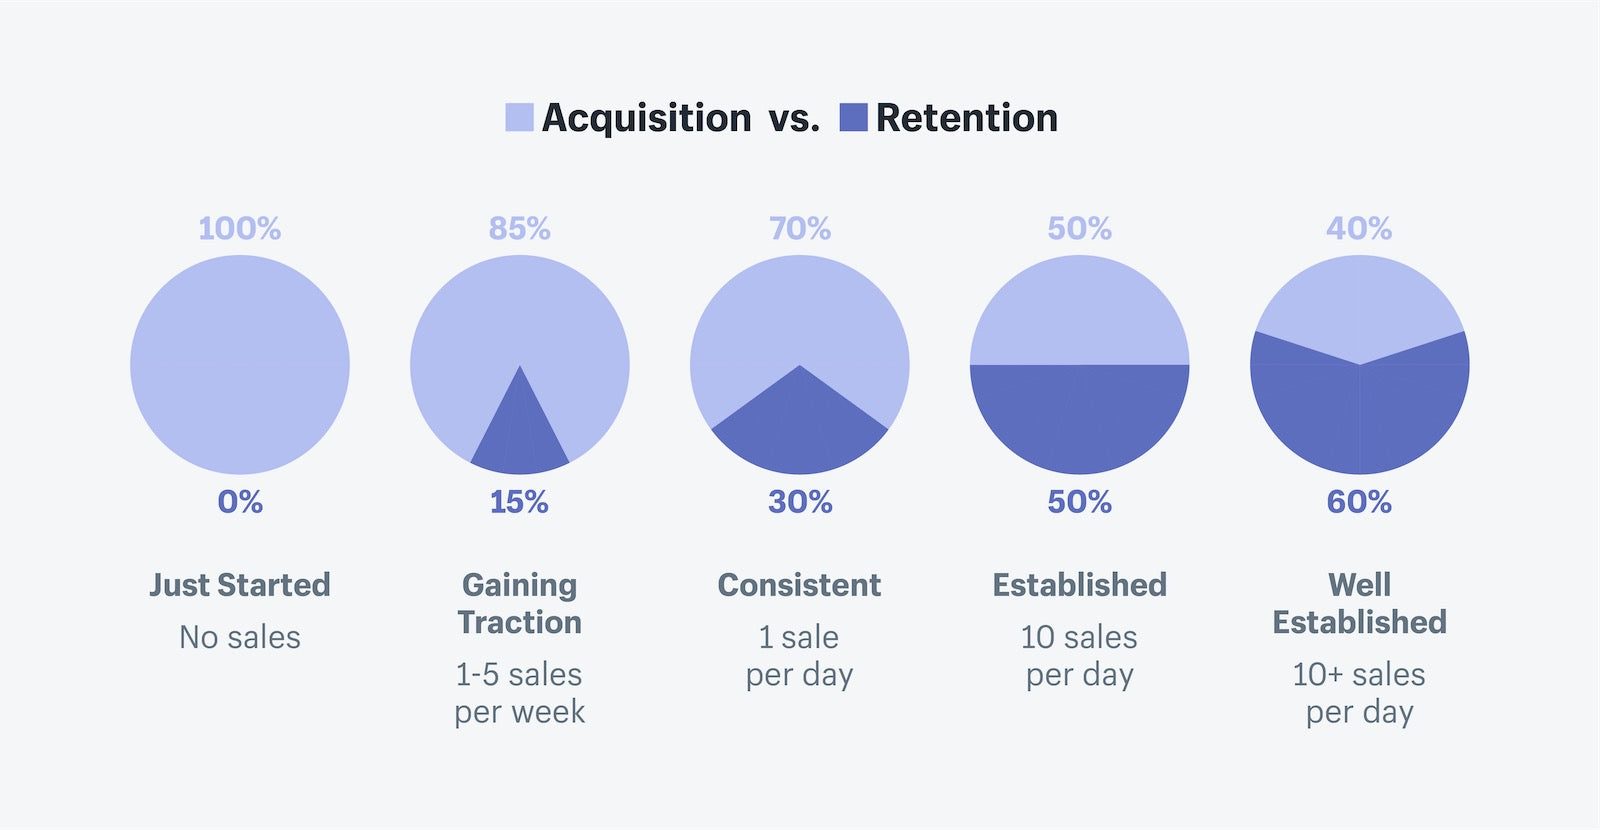 Customer retention vs customer acquisition